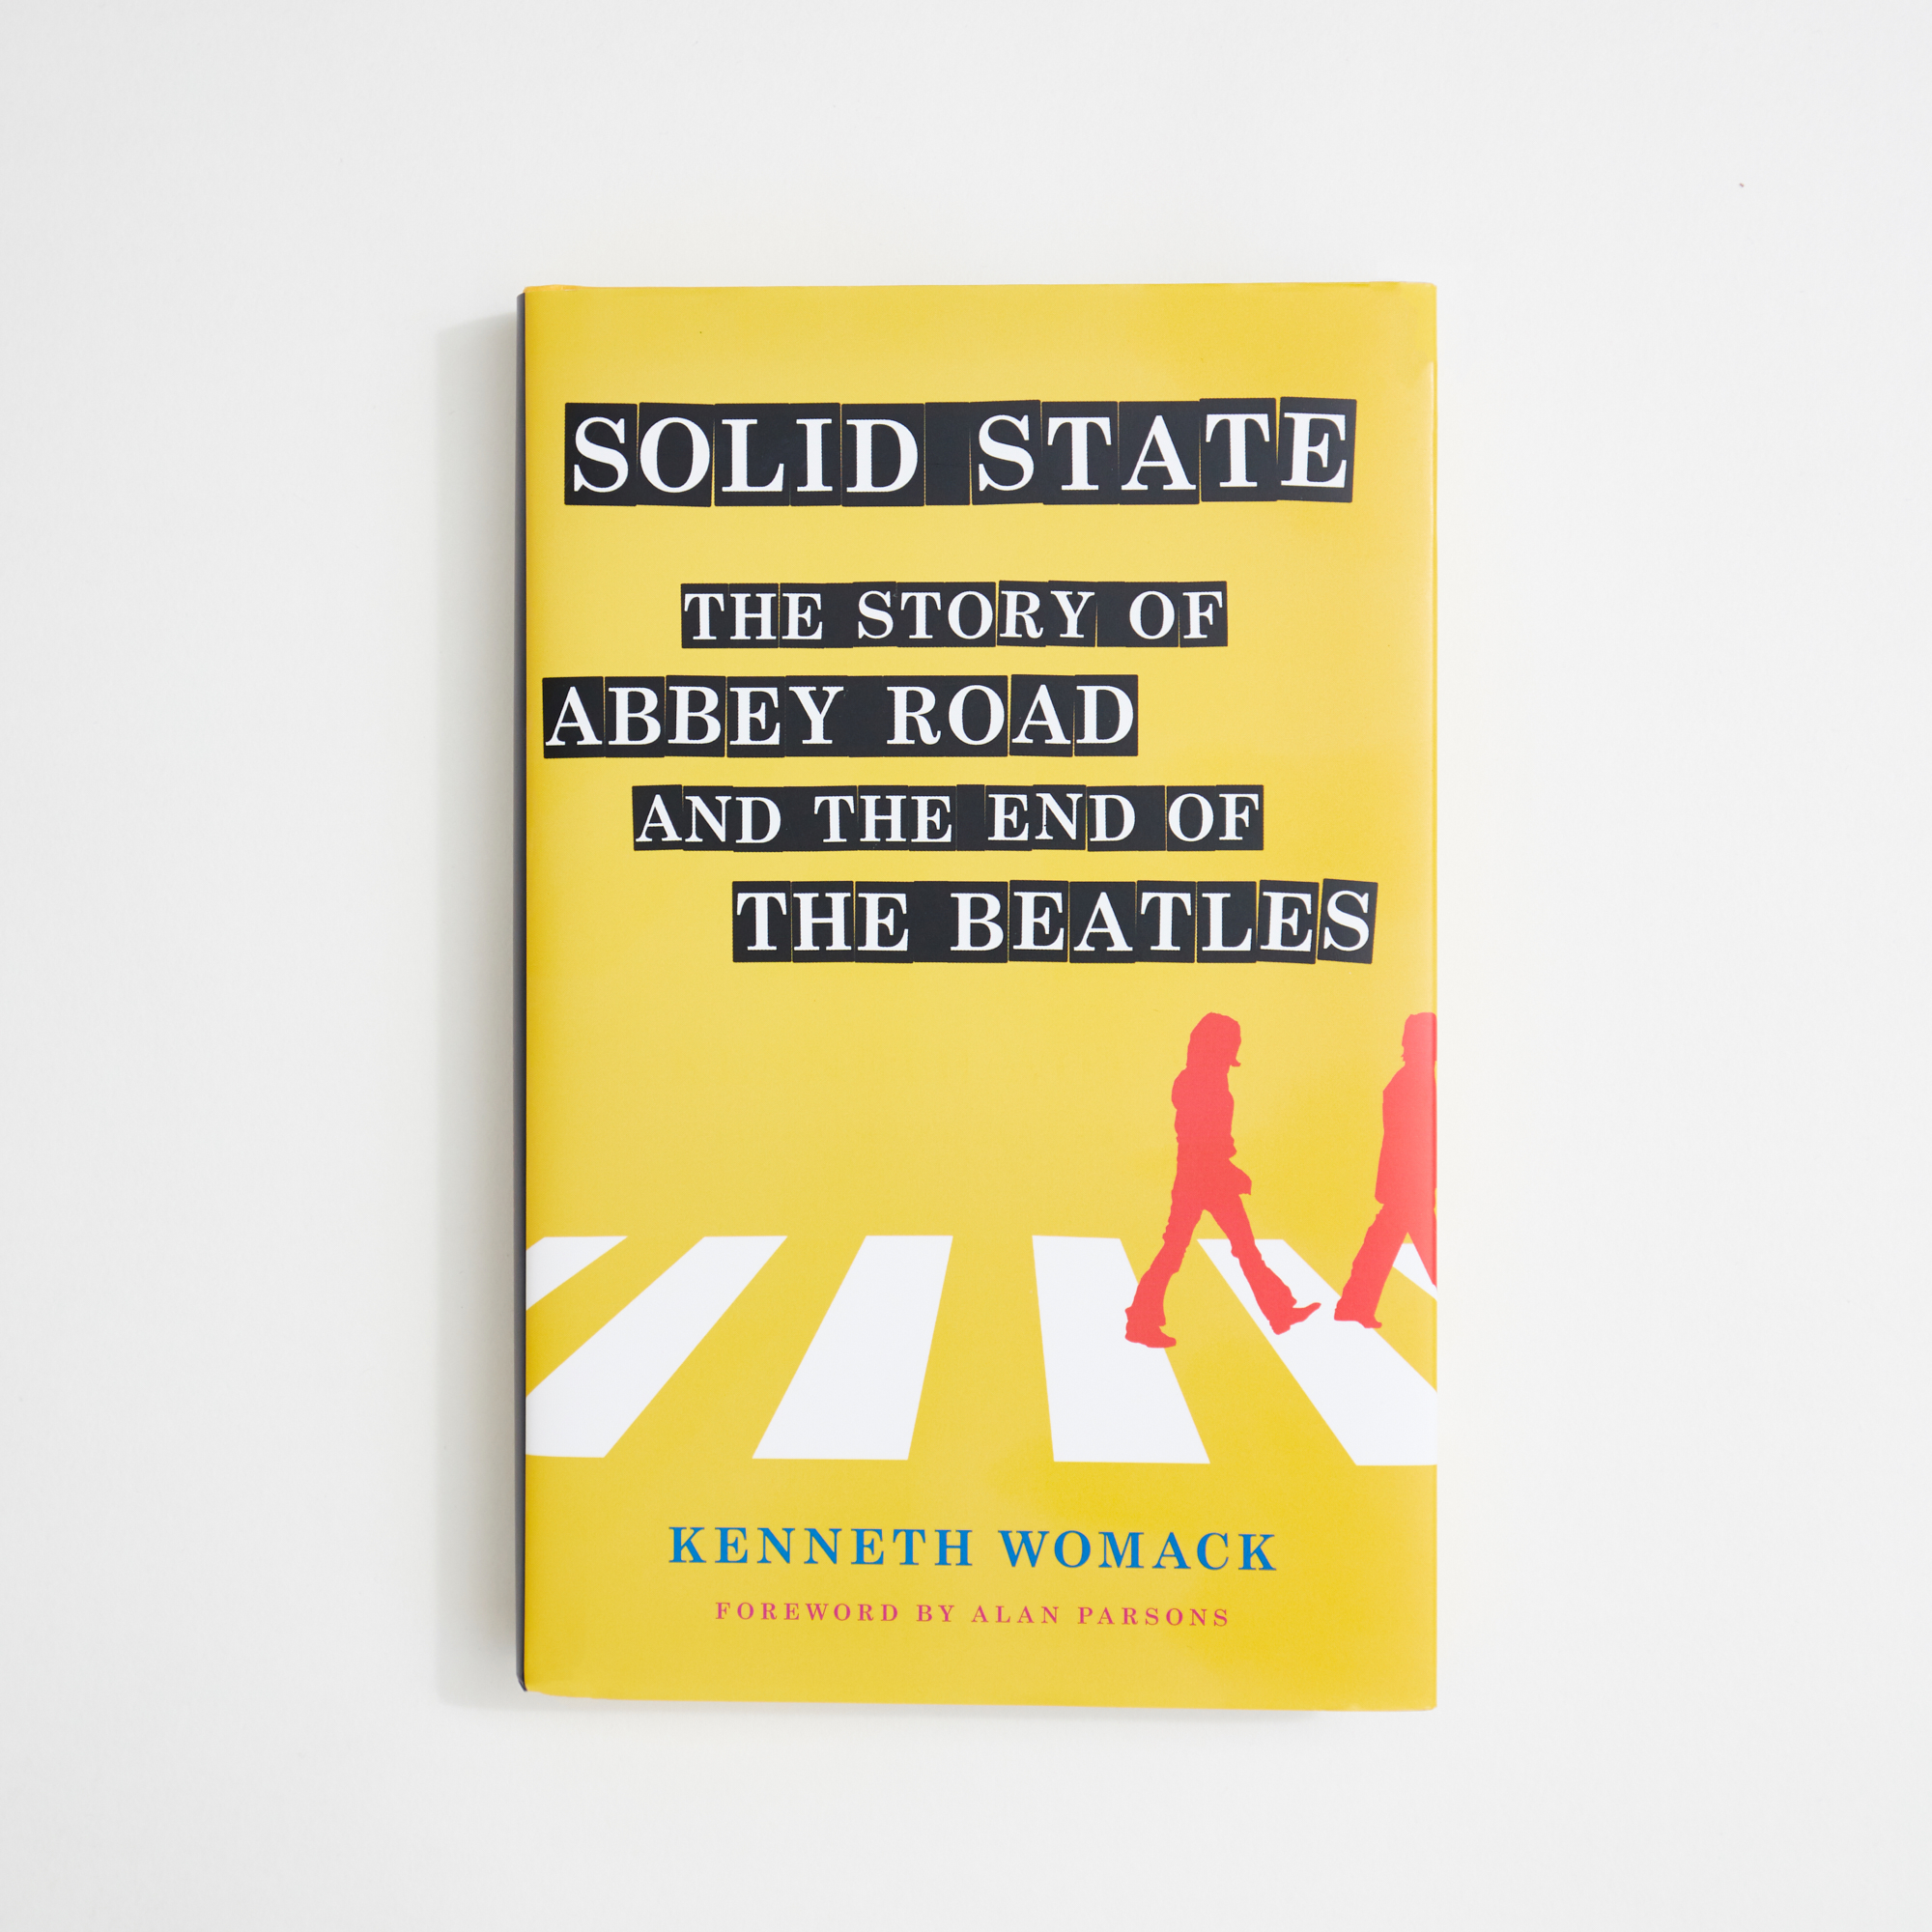 Solid State: The Story of Abbey Road and The End of The Beatles - Kenneth Womack